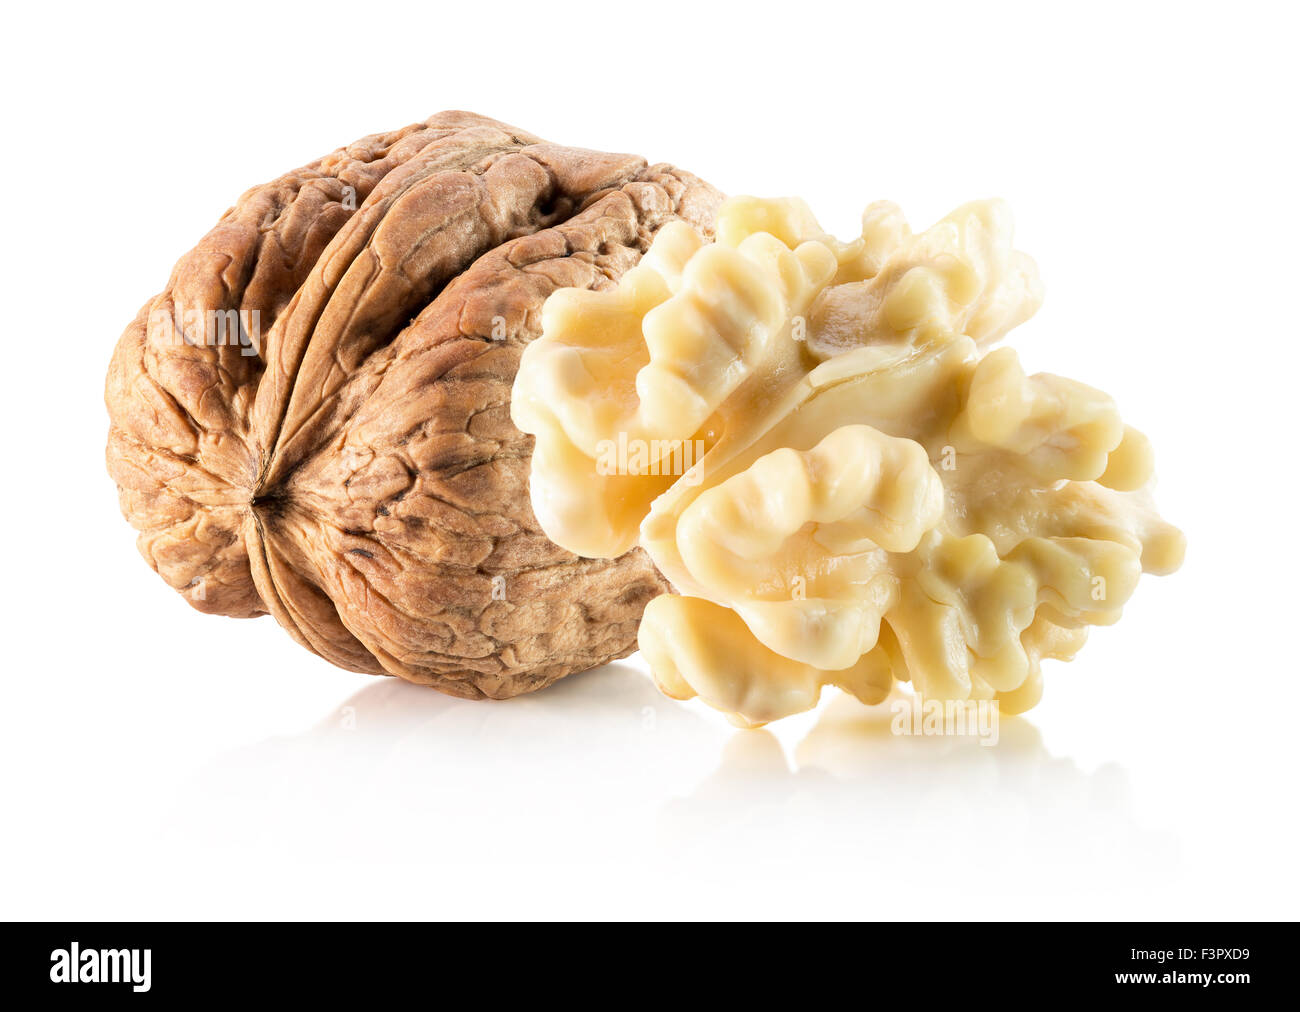 walnut with nucleus isolated on the white background. - Stock Image